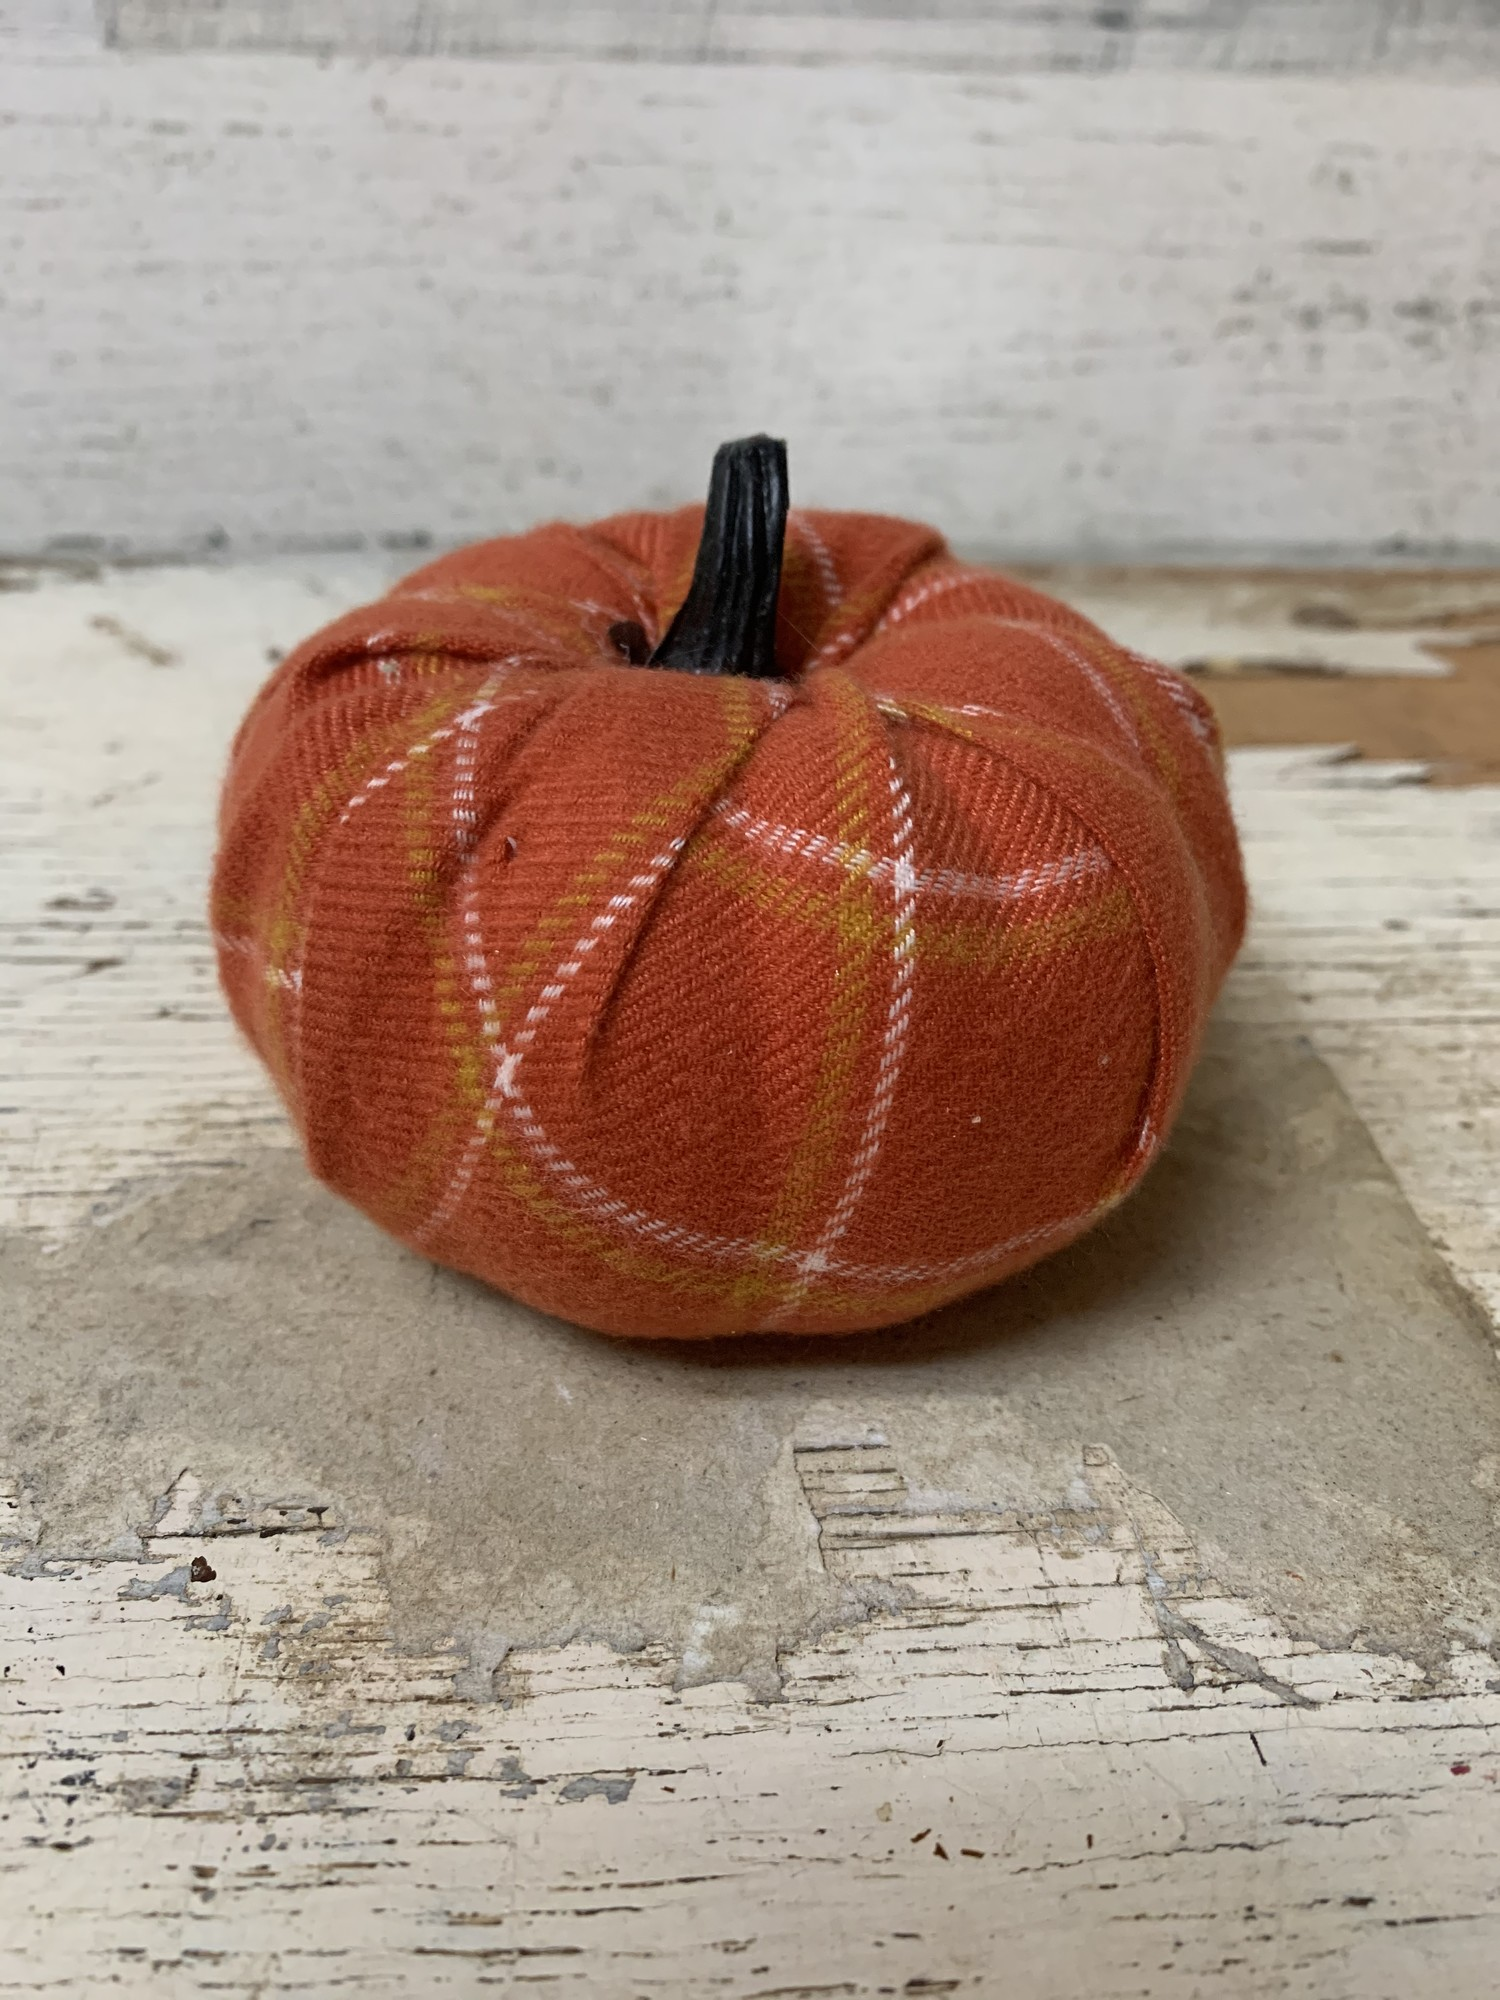 Add a sweet, decorative touch to your fall decor with this Dark Orange Plaid Flannel Fabric Pumpkin.<br /> Perfect little centerpiece, accent, diy projects.  It will definitely welcome fall into you house with style.<br /> Measures approx 3 1/4'' and  3 1/2'' wide.<br /> Please make sure to look at all the pictures!<br /> Thank you so much!